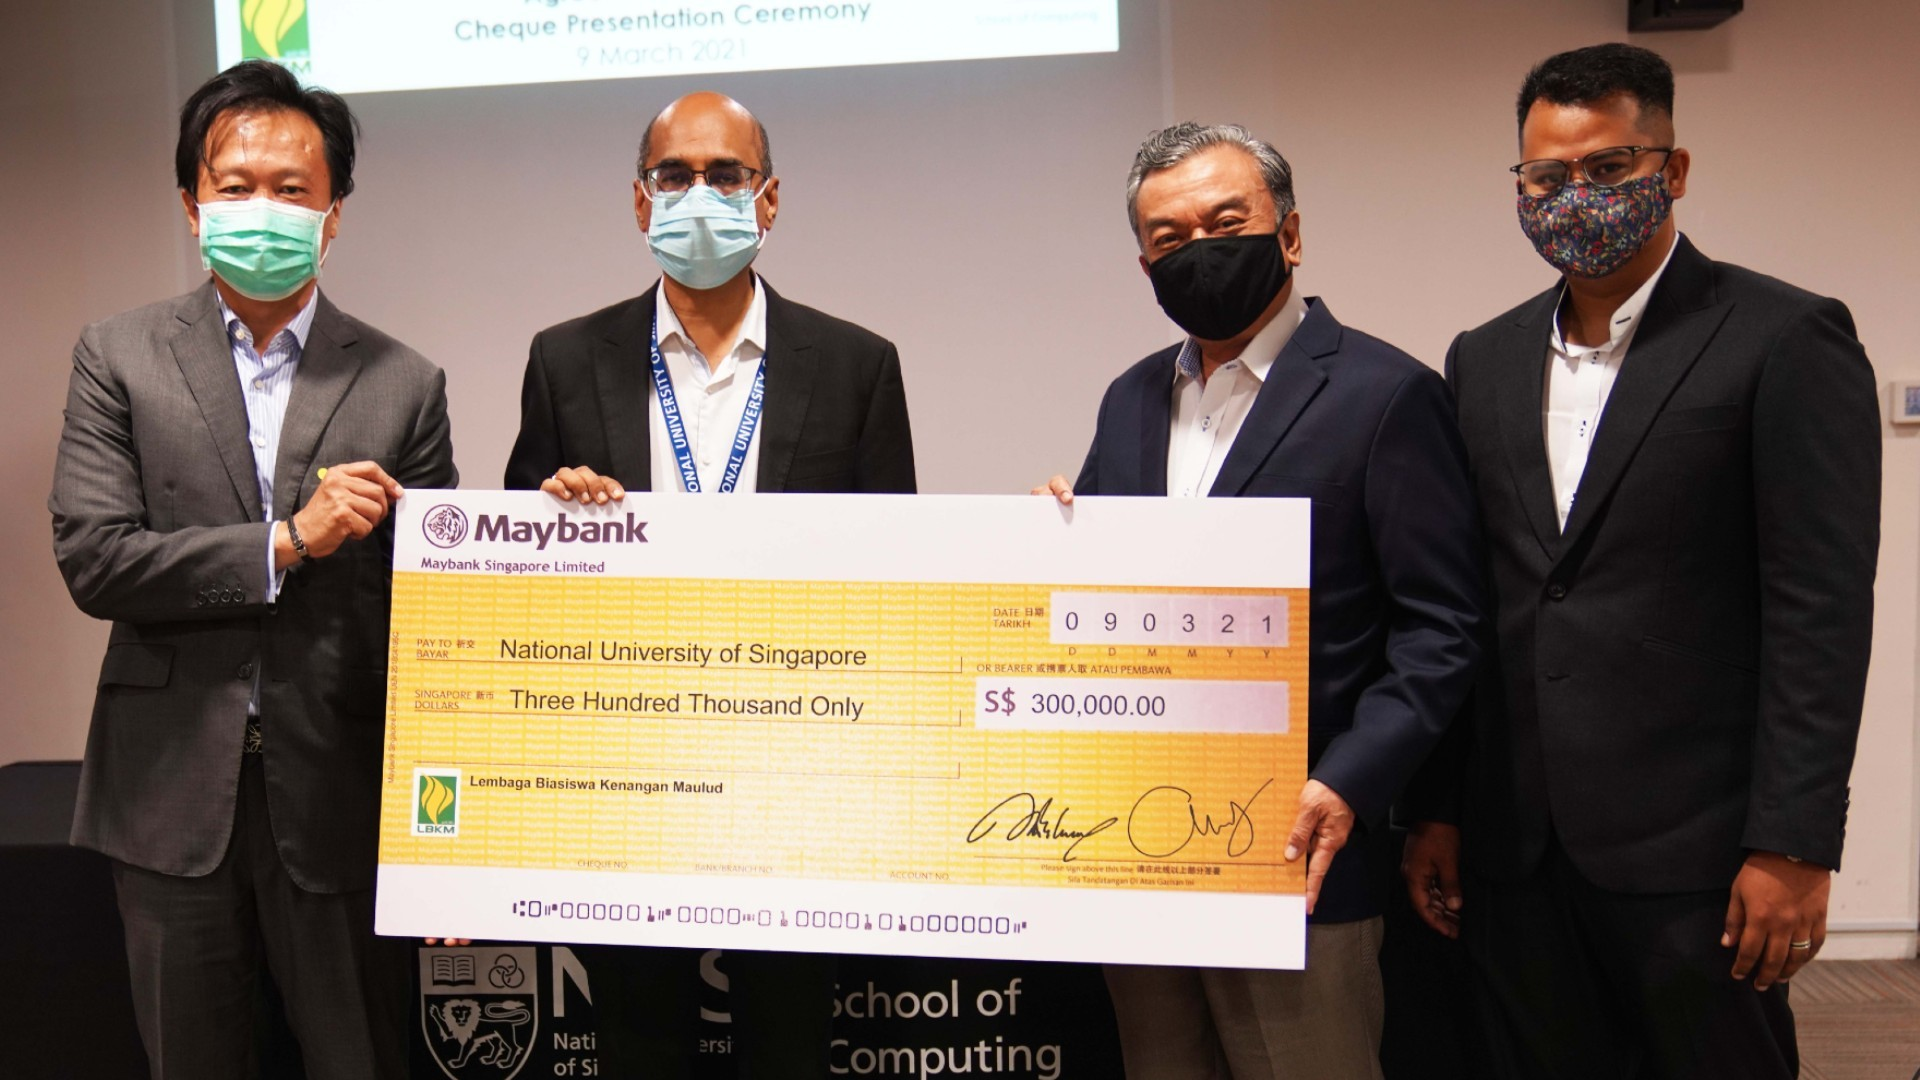 (From left) Mr Kevin Ong from the NUS Development Office; Prof Mohan Kankanhalli, Dean of the NUS School of Computing; Mr Suhaimi Salleh, President of LBKM, and Mr Abdullah Arief Ali, Honorary Treasurer of LBKM, at the cheque presentation ceremony.